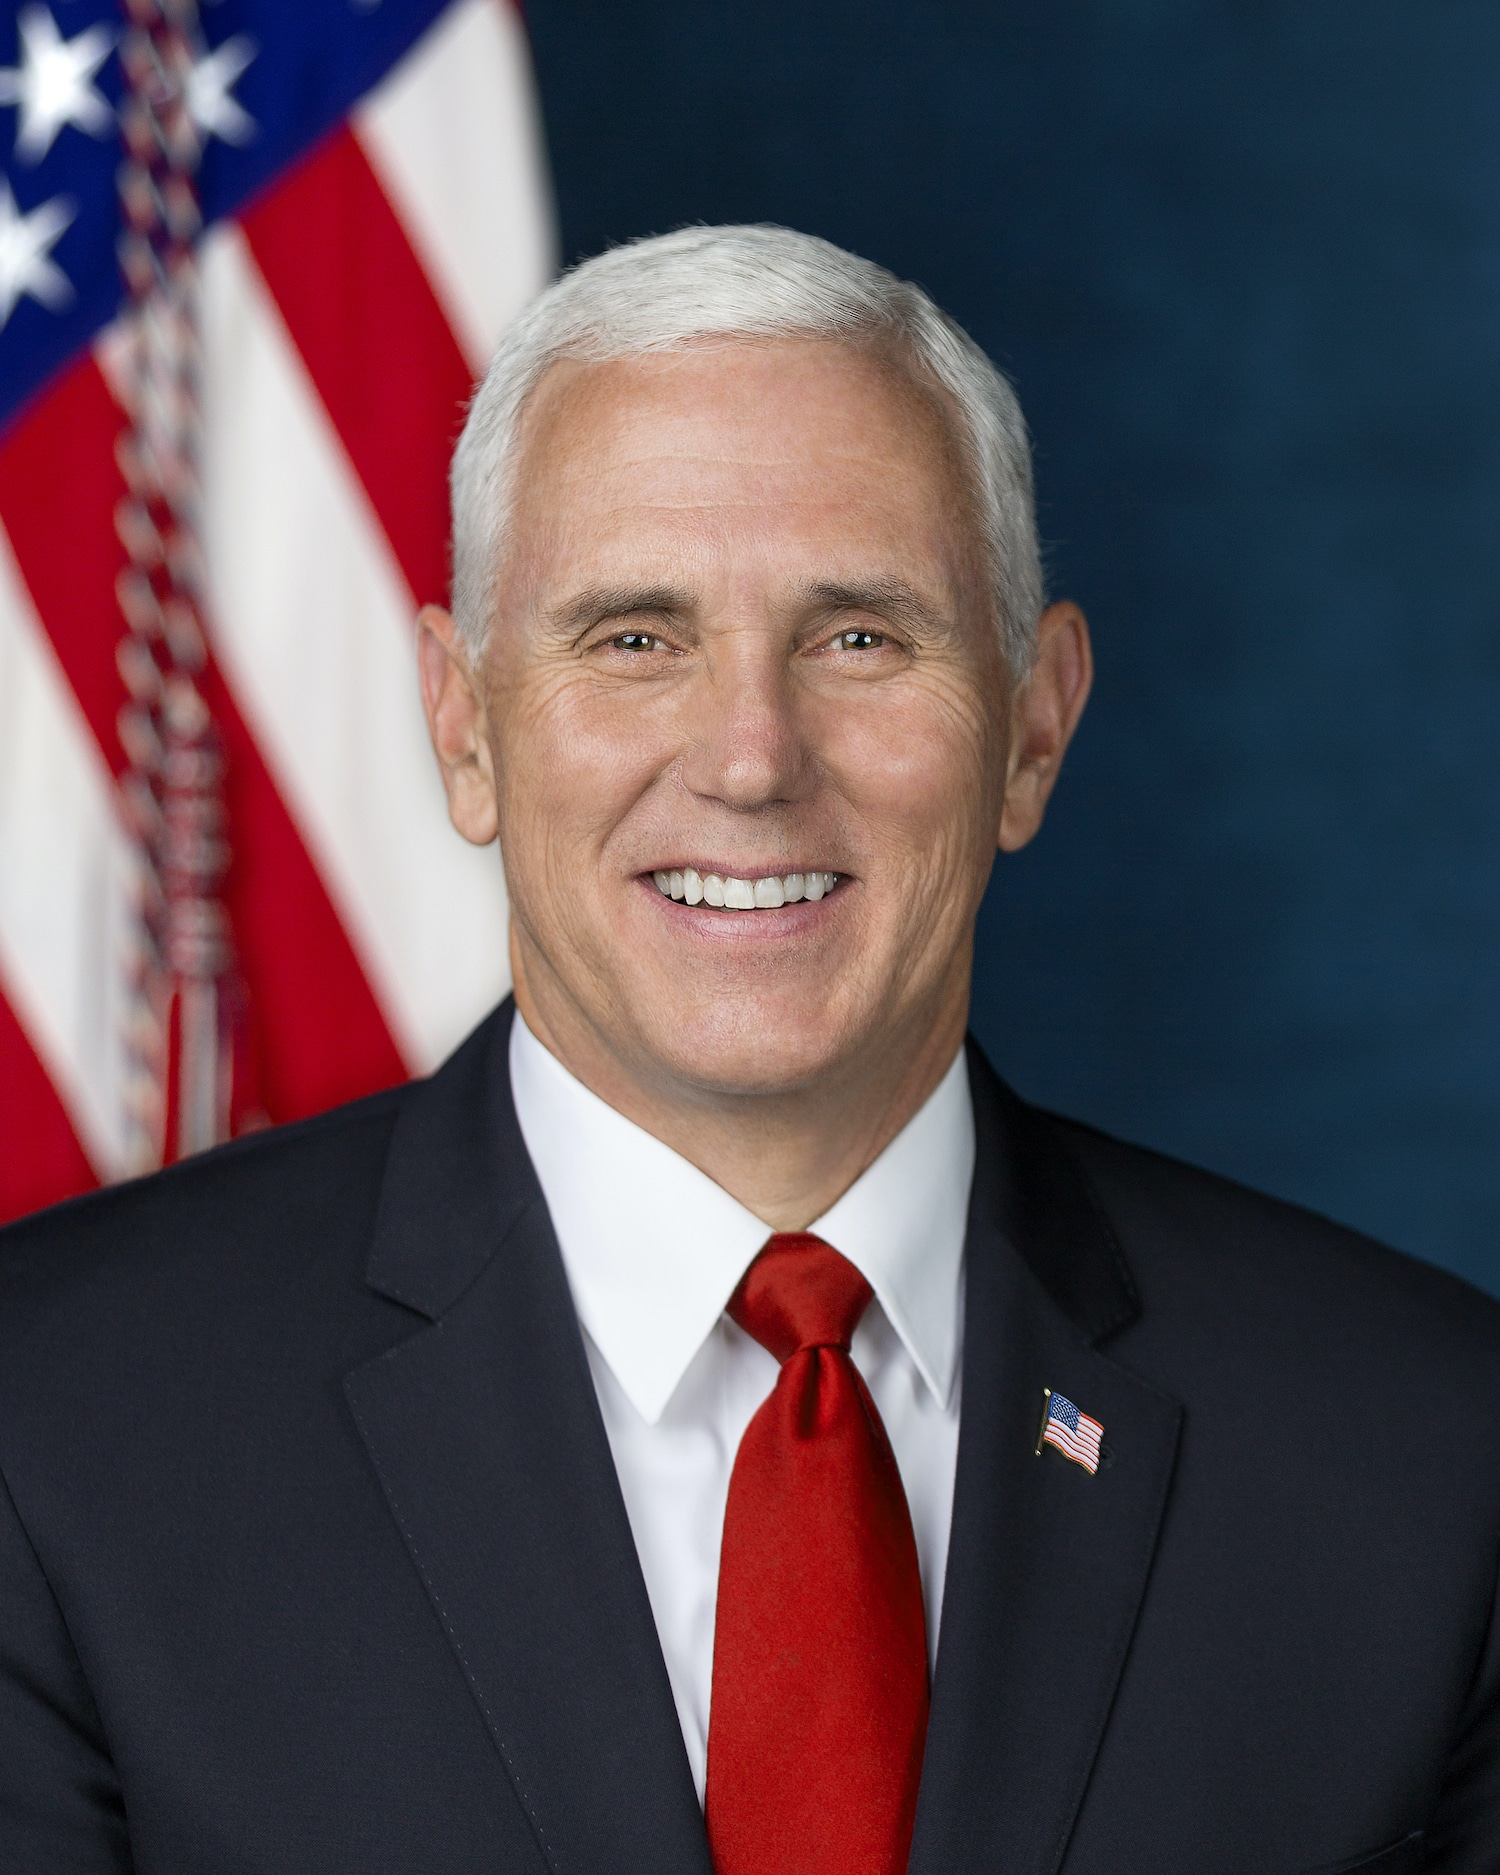 Vice President Mike Pence to attend Sunday service in Boone